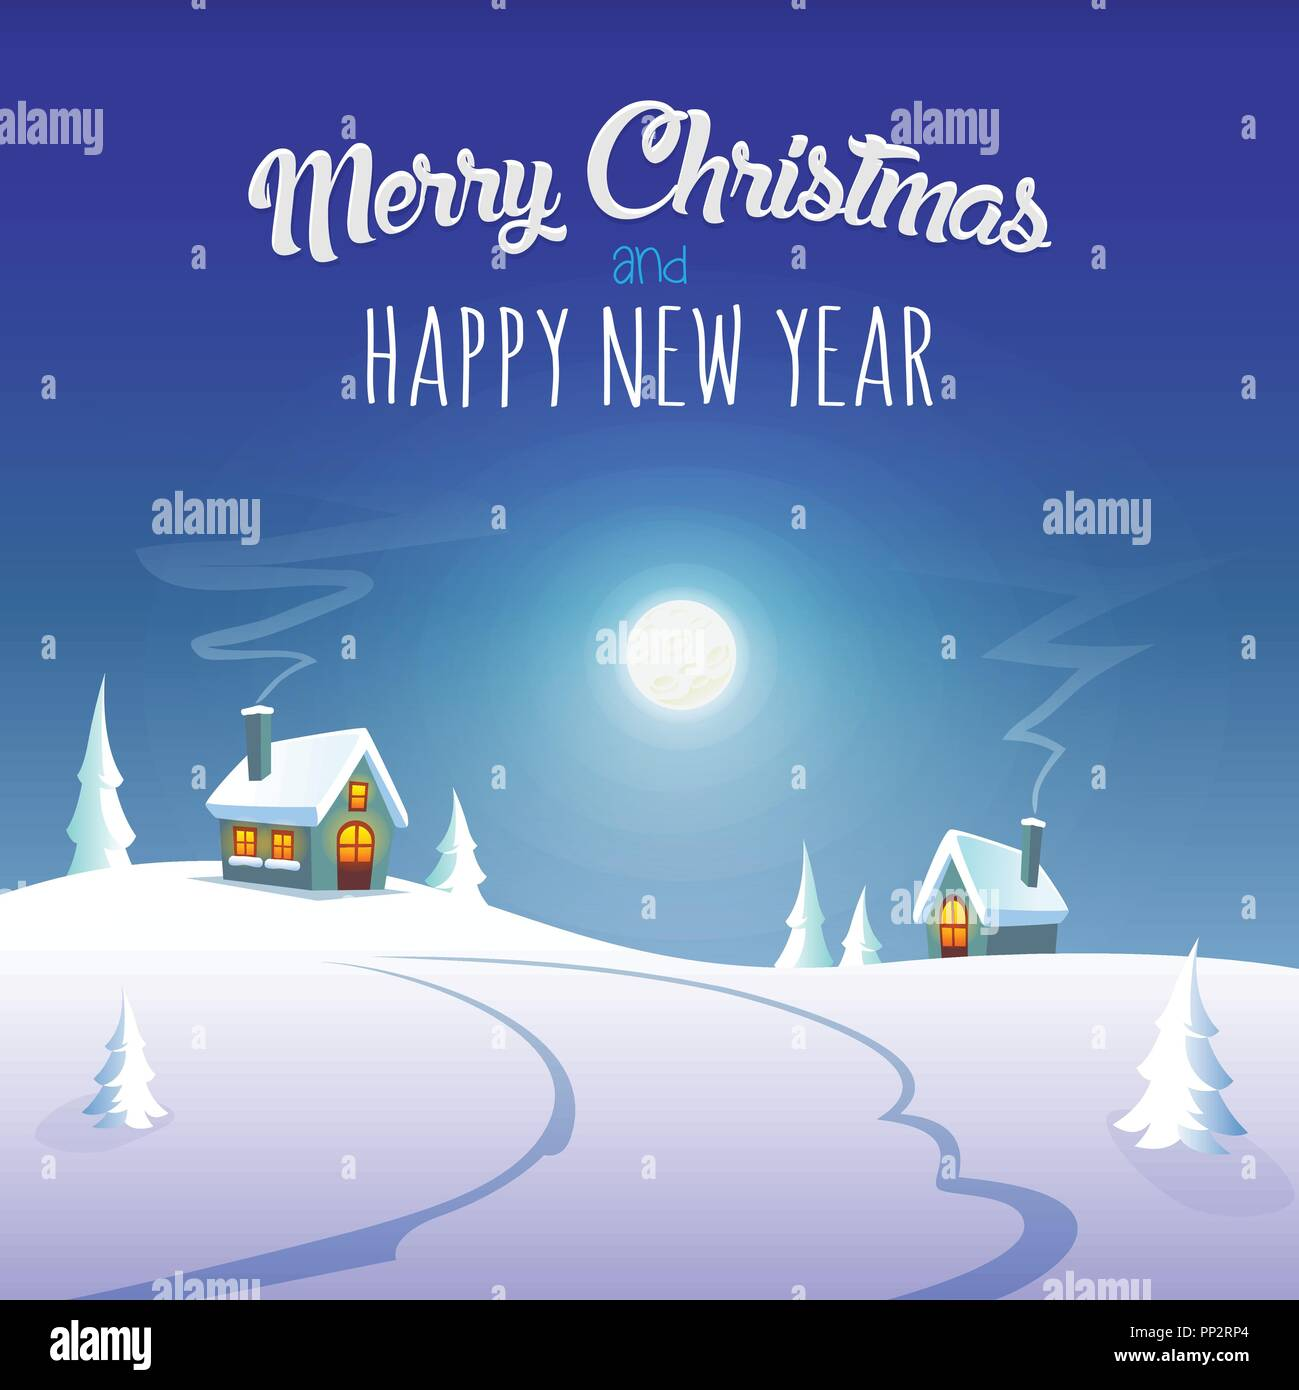 merry christmas and happy new year greeting card winter moonlight at village